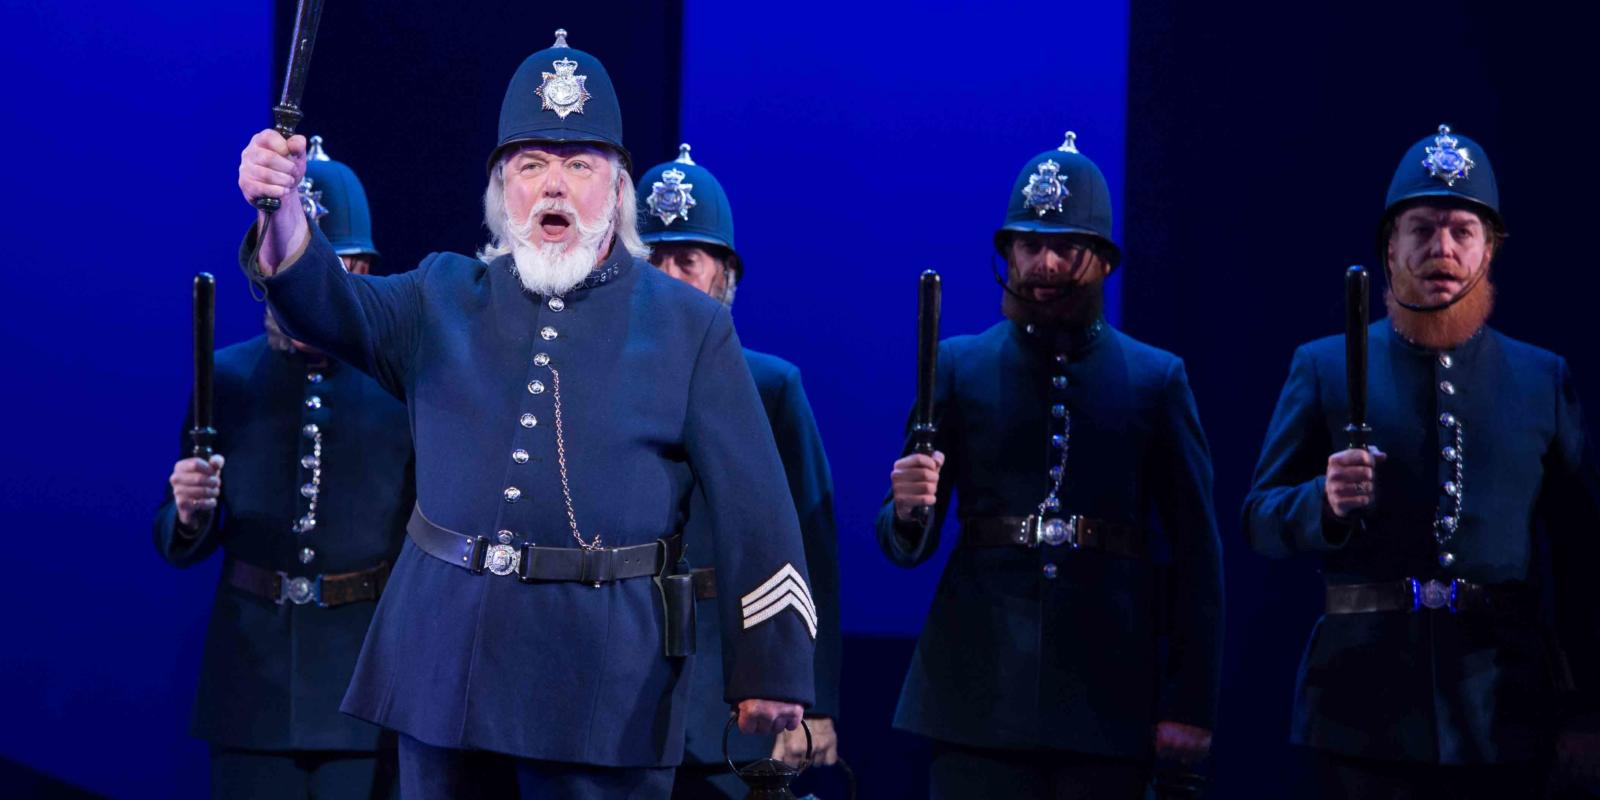 ENO's The Pirates of Penzance - John Tomlinson as Sergeant of Police. Photo by Tom Bowles